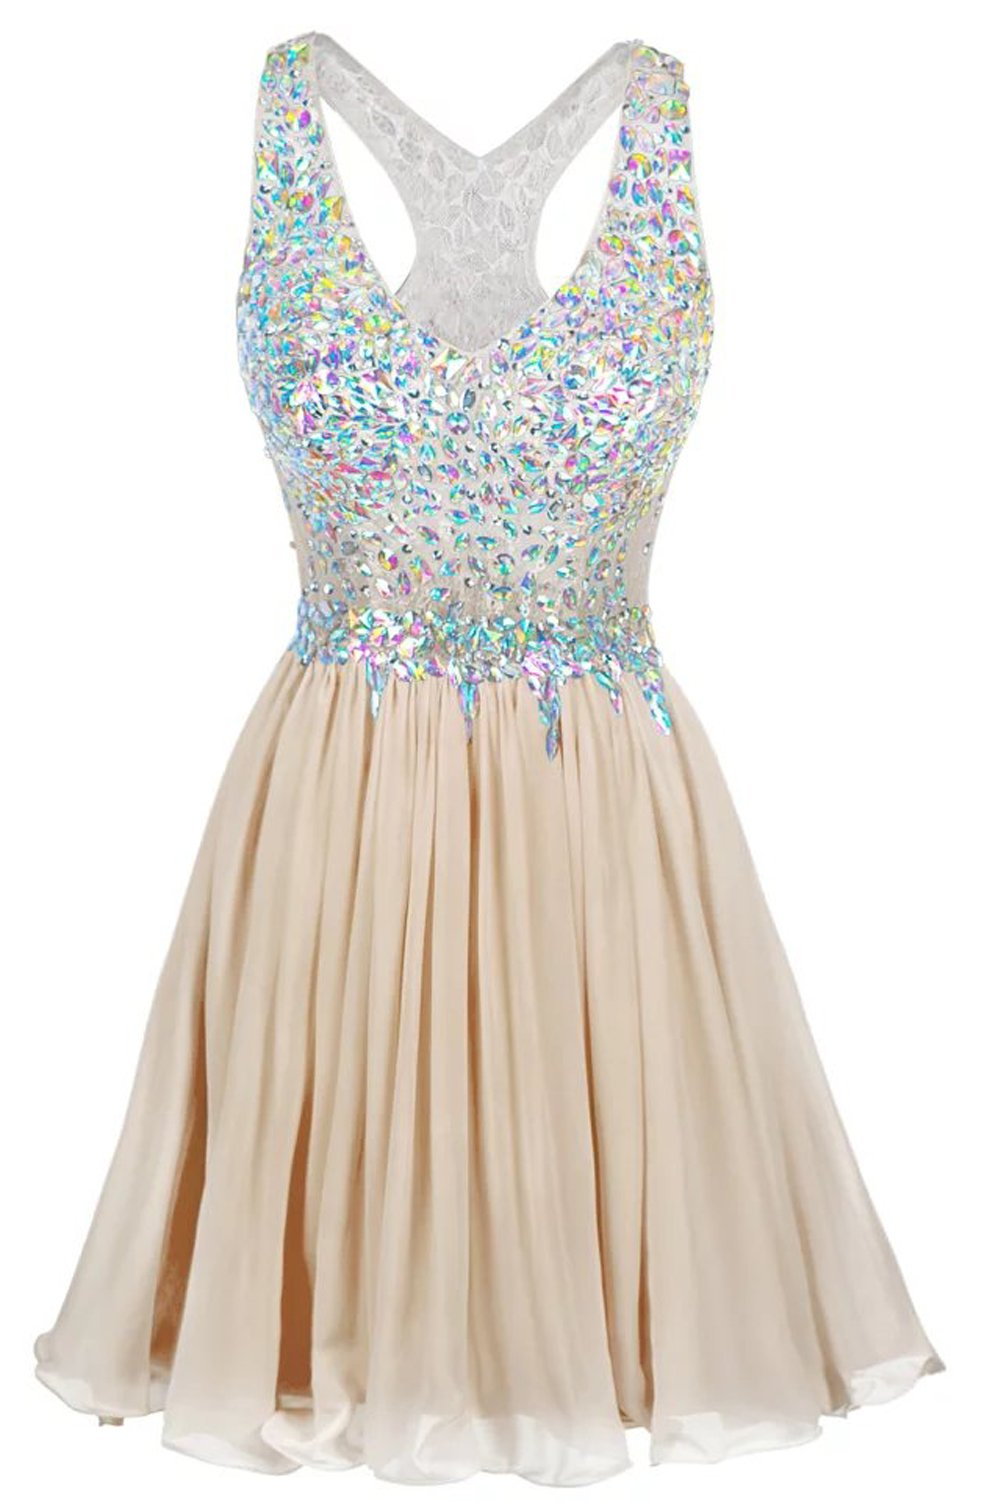 LaceLady Short/Mini Halter Cocktail A Line/Princess Homecoming Dresses Beaded Bodice Champagne US8